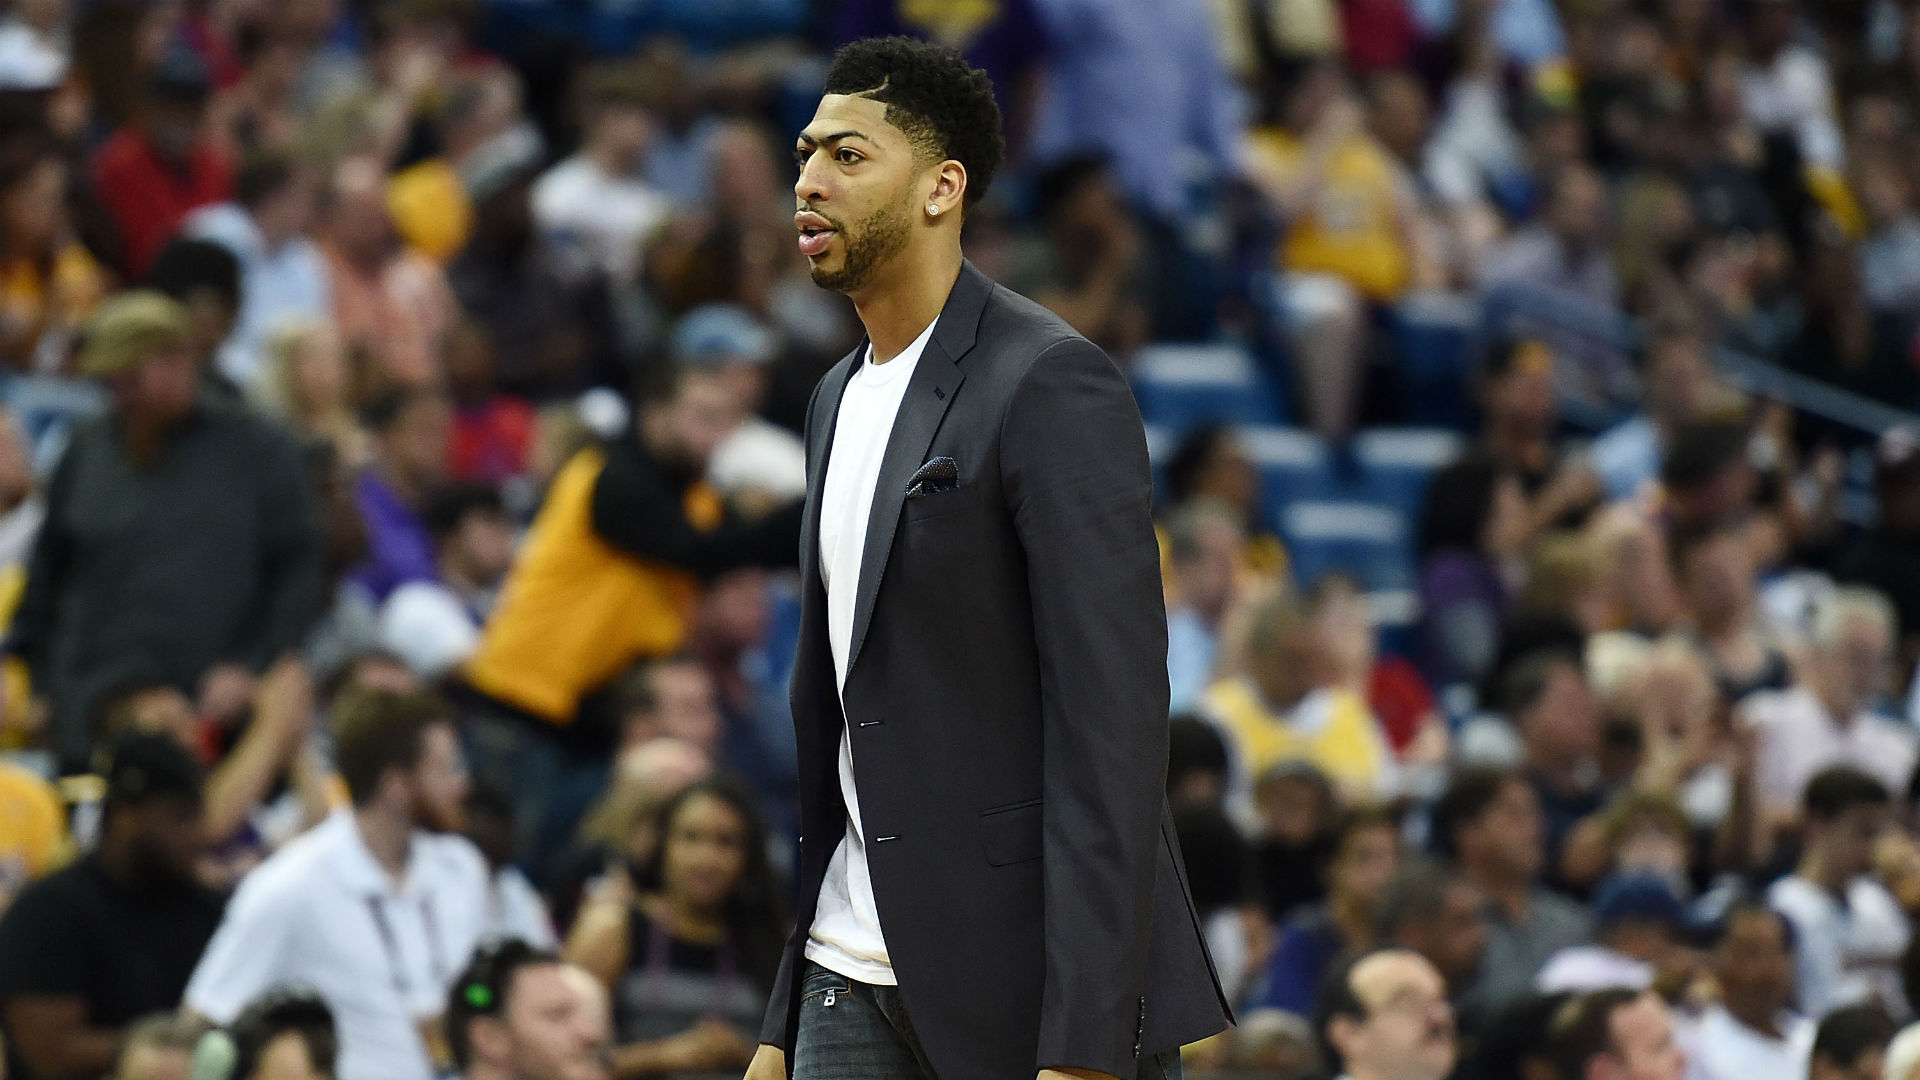 Anthony-davis-52616-usnews-getty-ftr_wkitshfhodio1jy63t70kw0u2